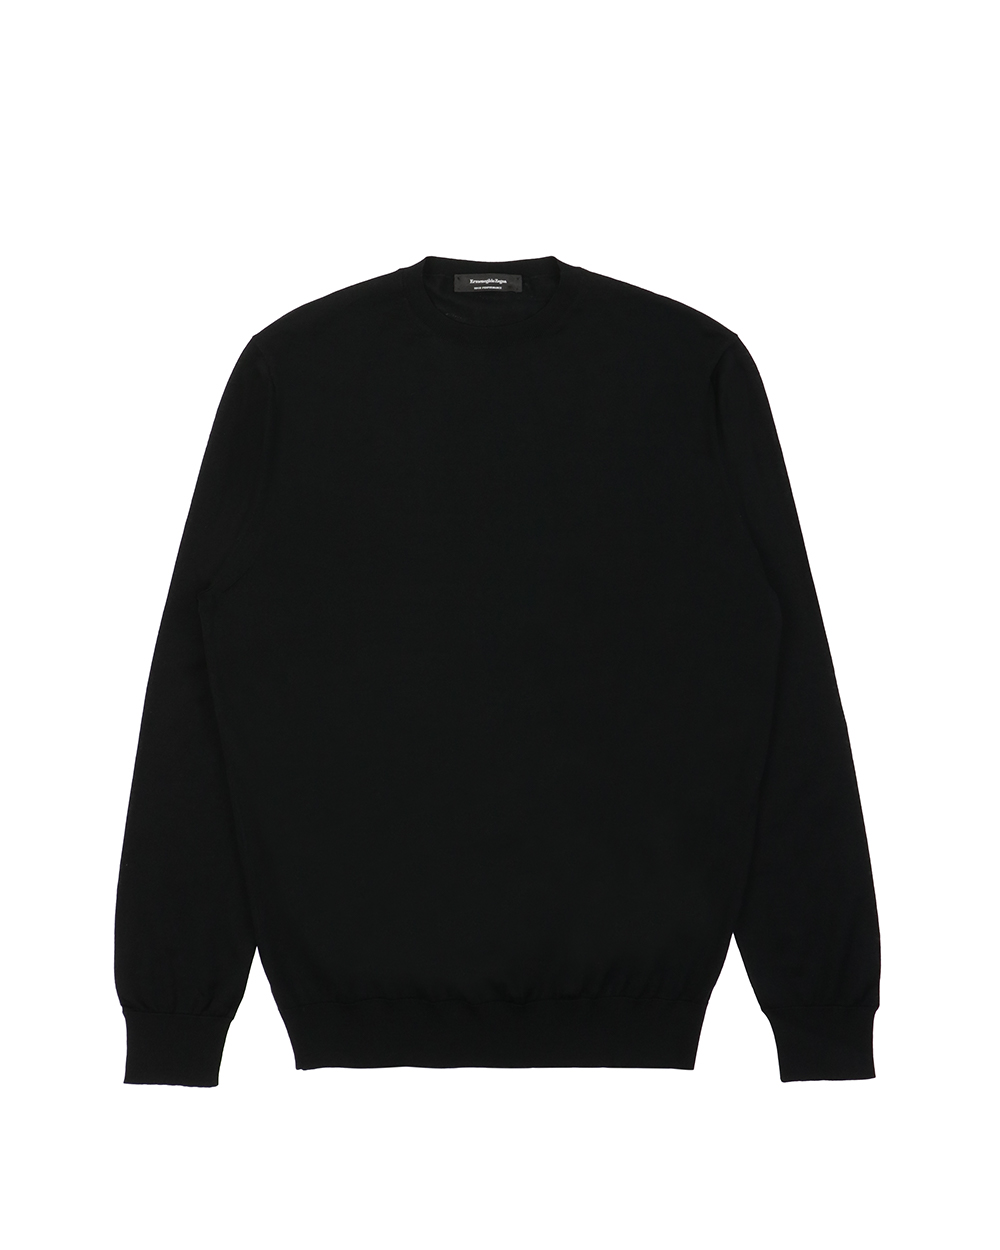 Cotton Long Sleeves Crew Neck Sweatshirt